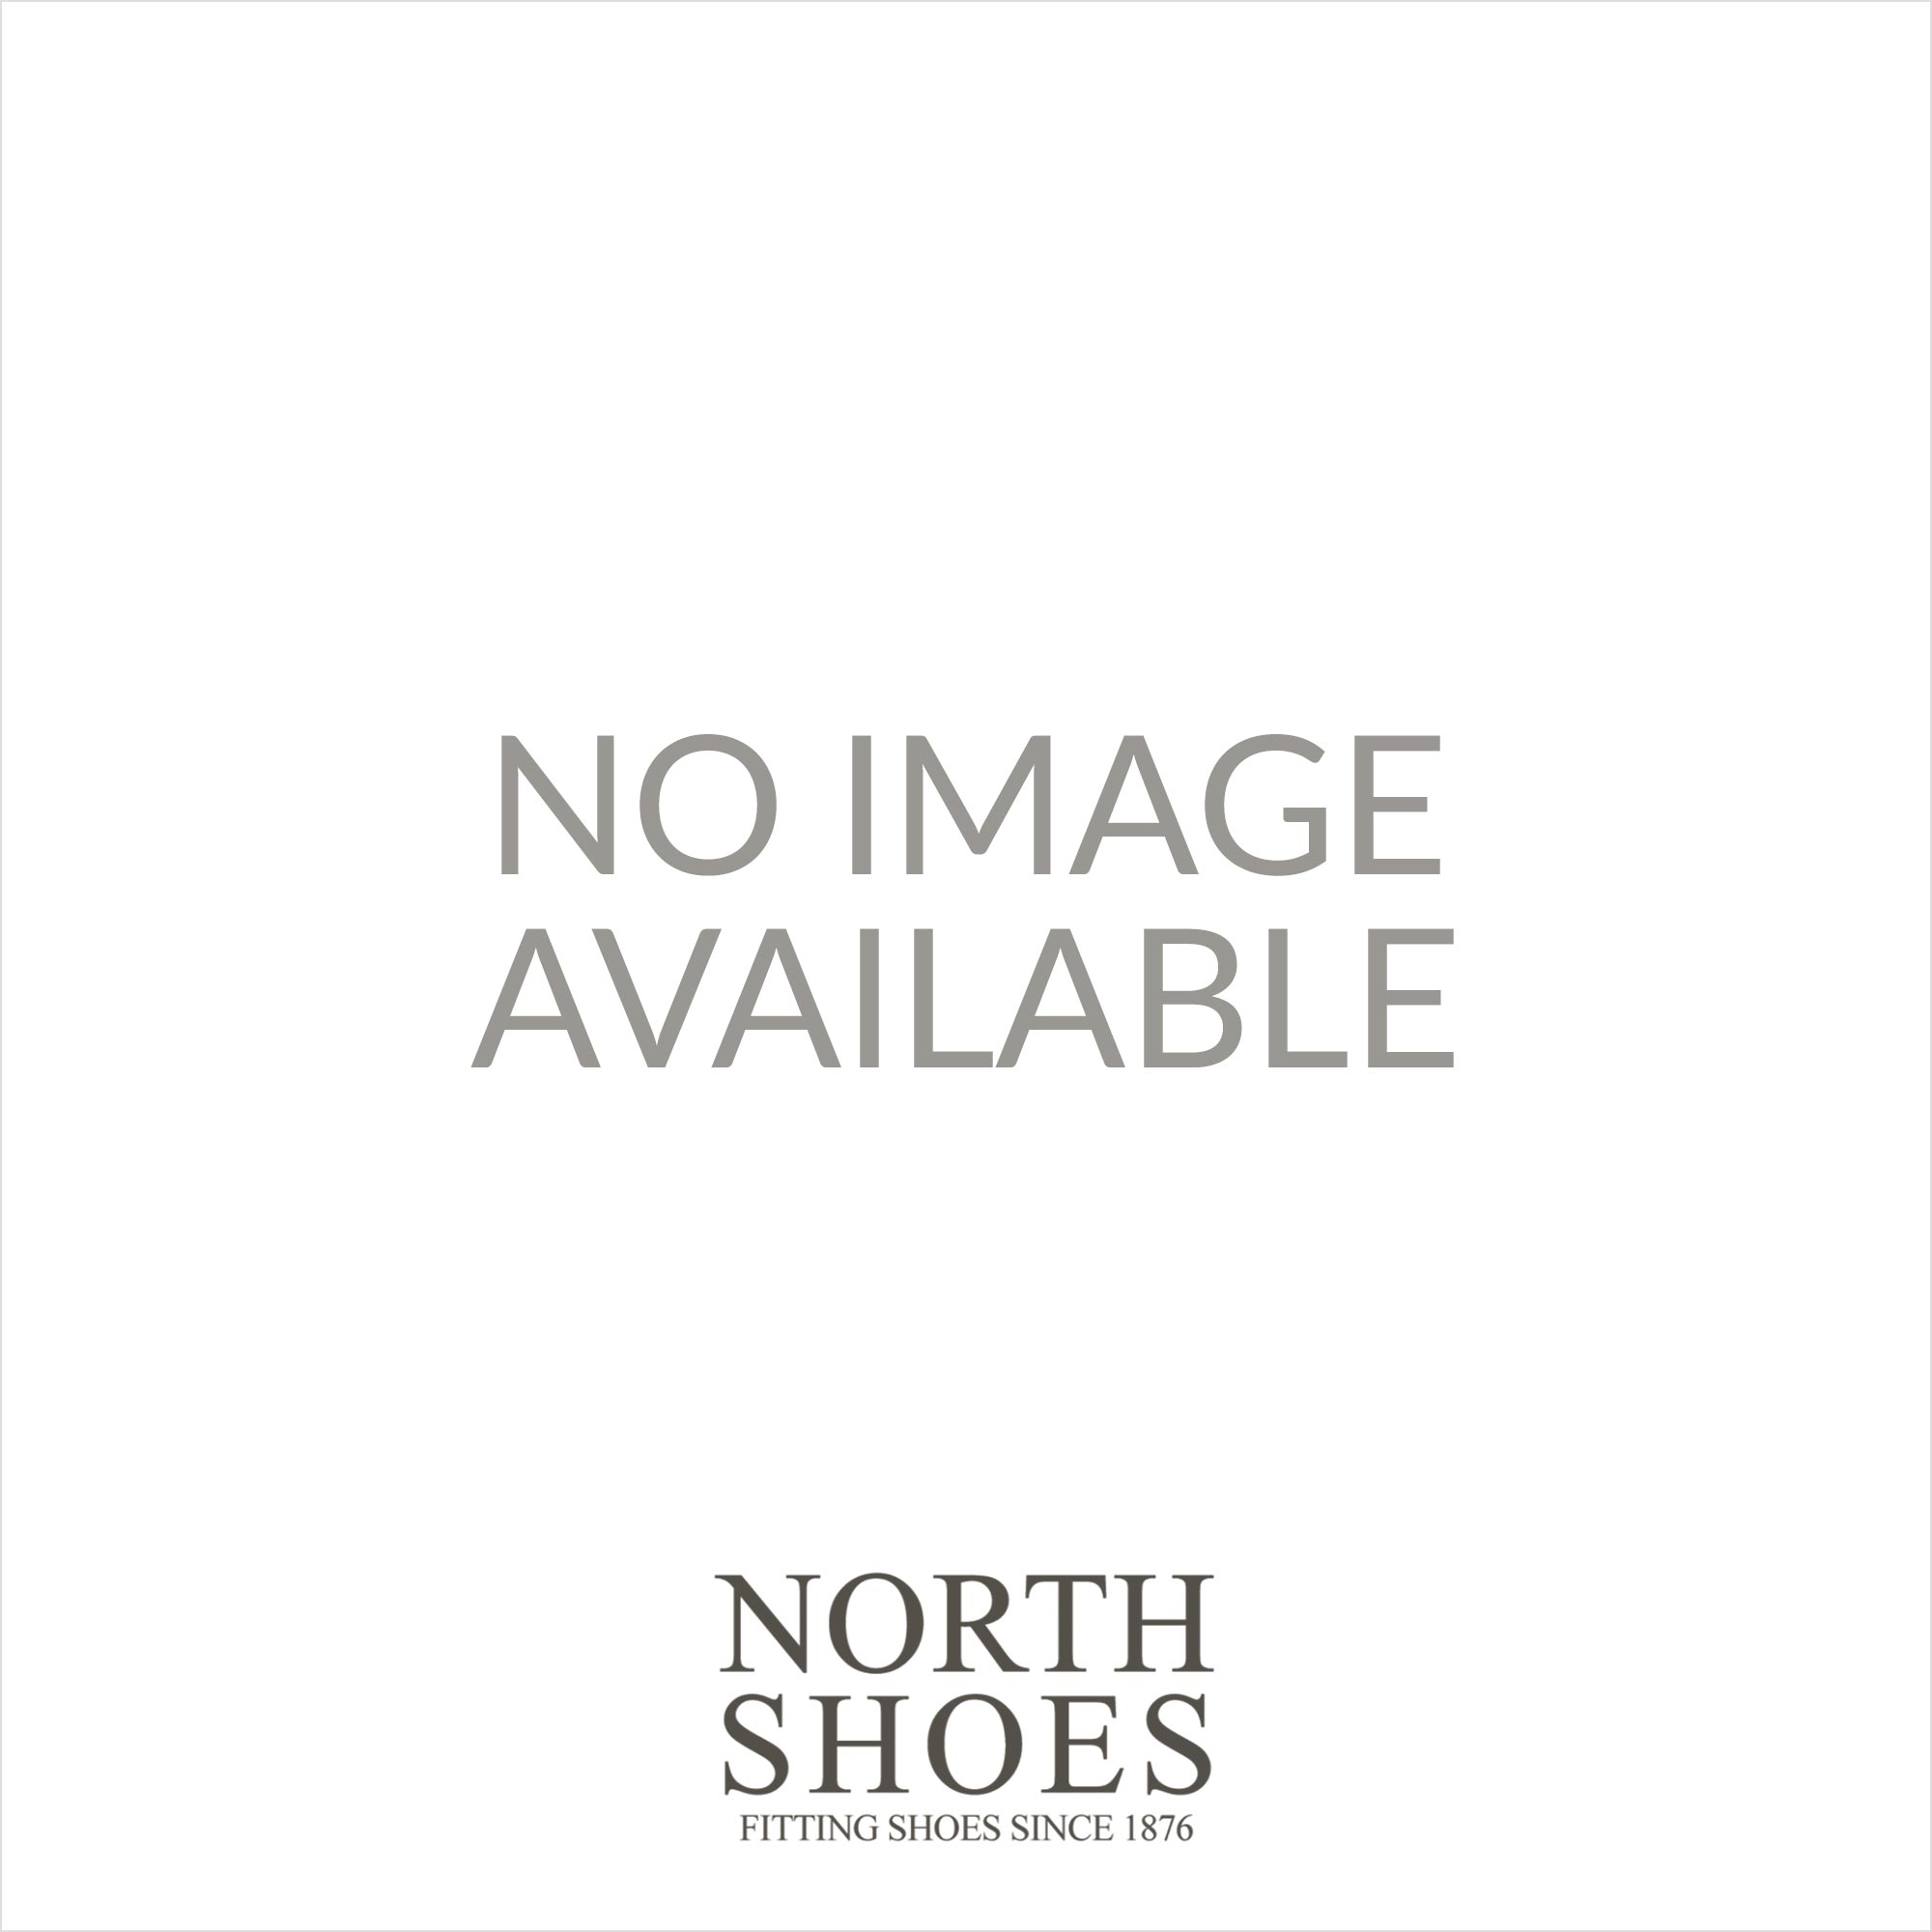 8bb7bf621519 Clarks Crown Jump Junior Teal Patent Leather Girls Mary Jane Shoes - Clarks  from North Shoes UK